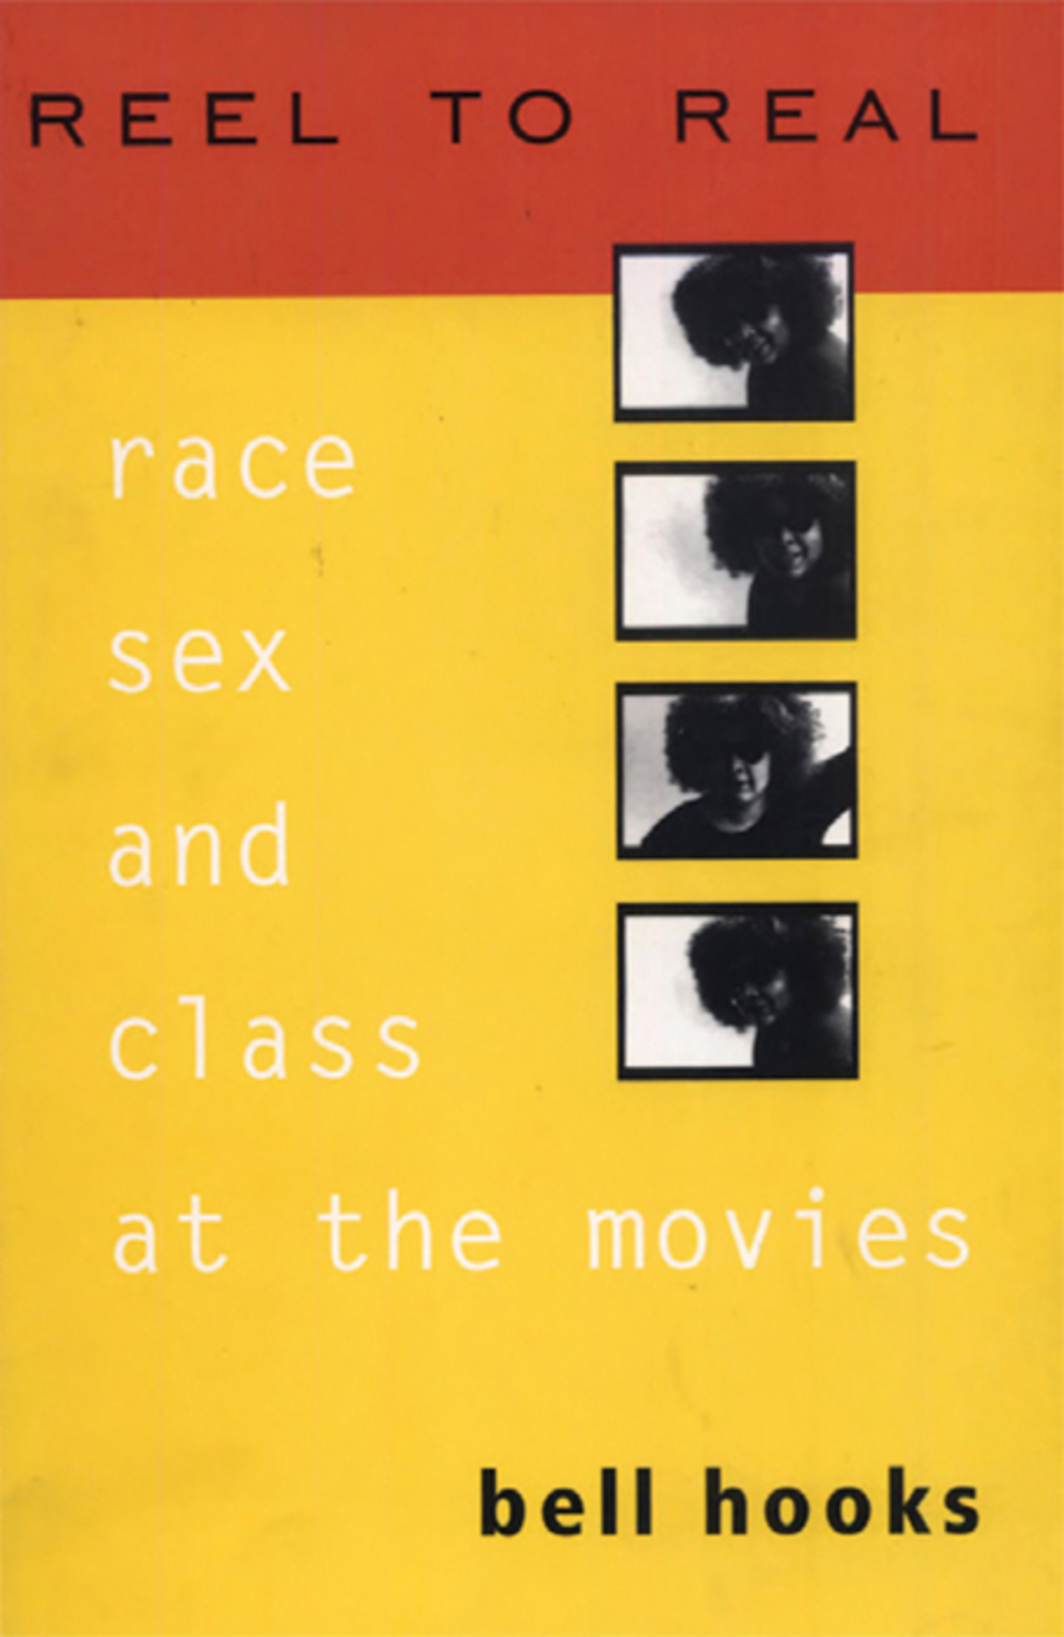 *Cover of bell hooks's _Reel to Real: Race, Sex, and Class at the Movies_* (Routledge, 1996).